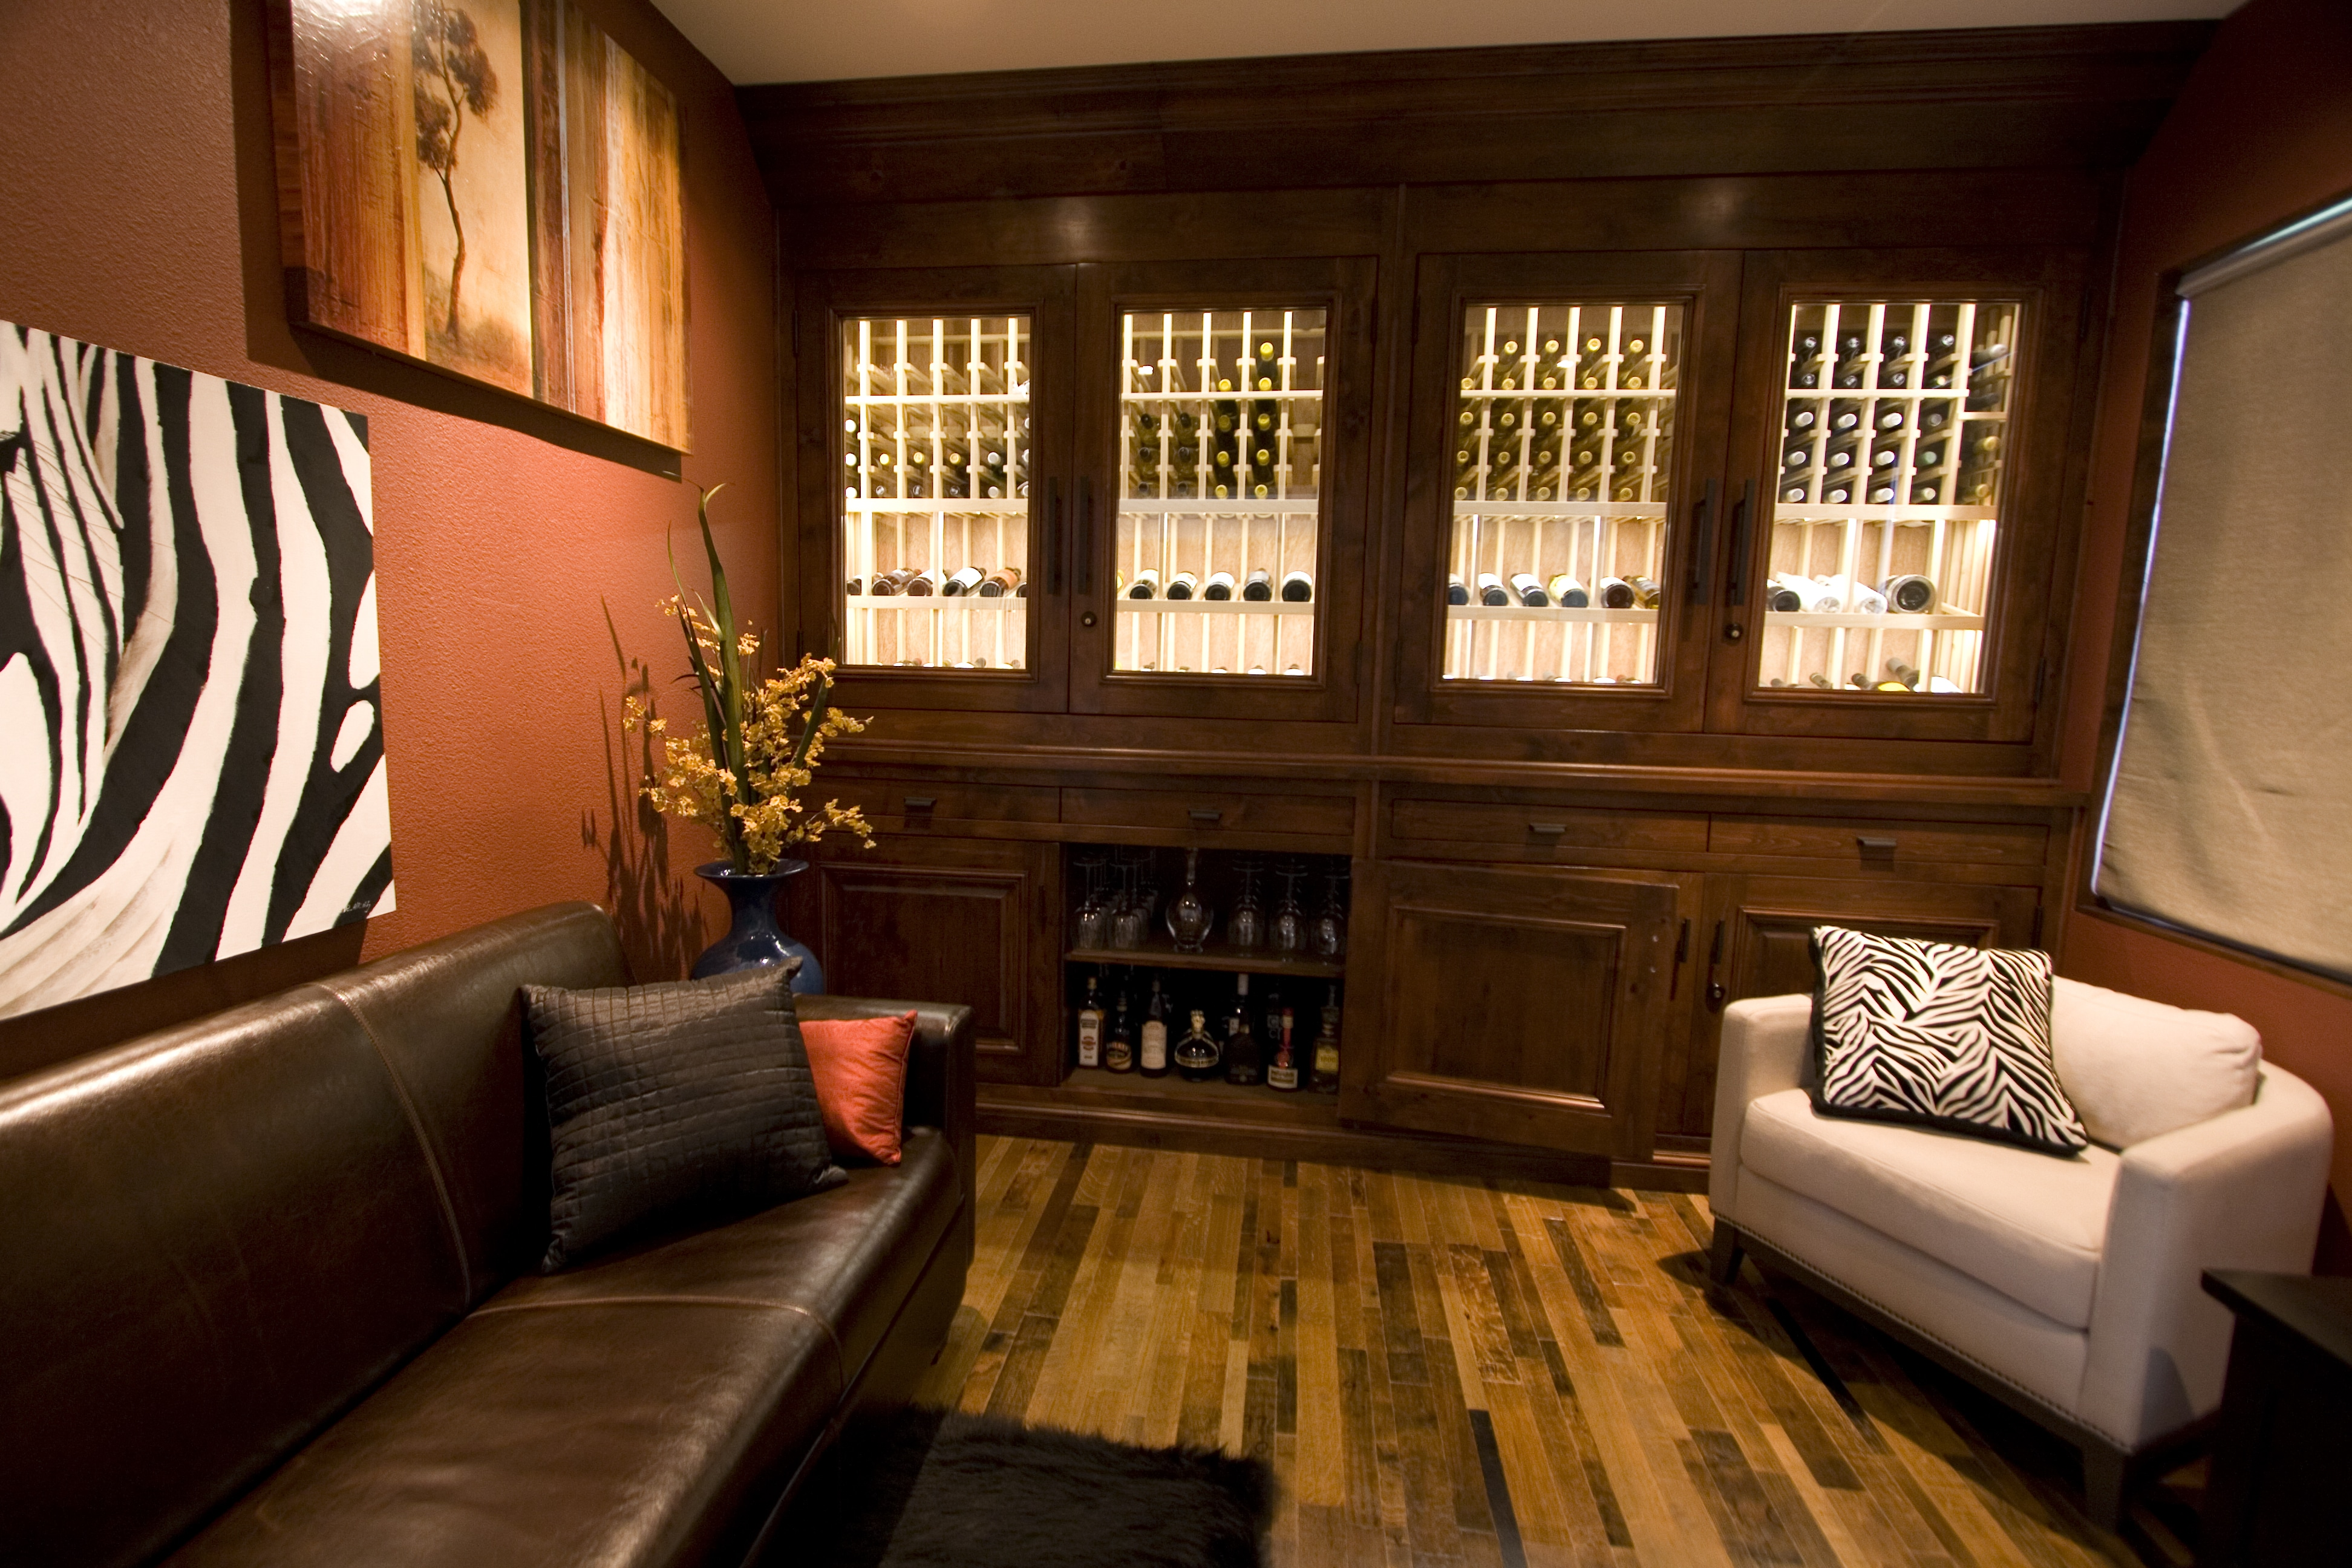 The type of material used for a wine cellar's flooring can help accentuate the overall design of the storage room. The most popular choices of materials include old wine barrels and natural cork planks.